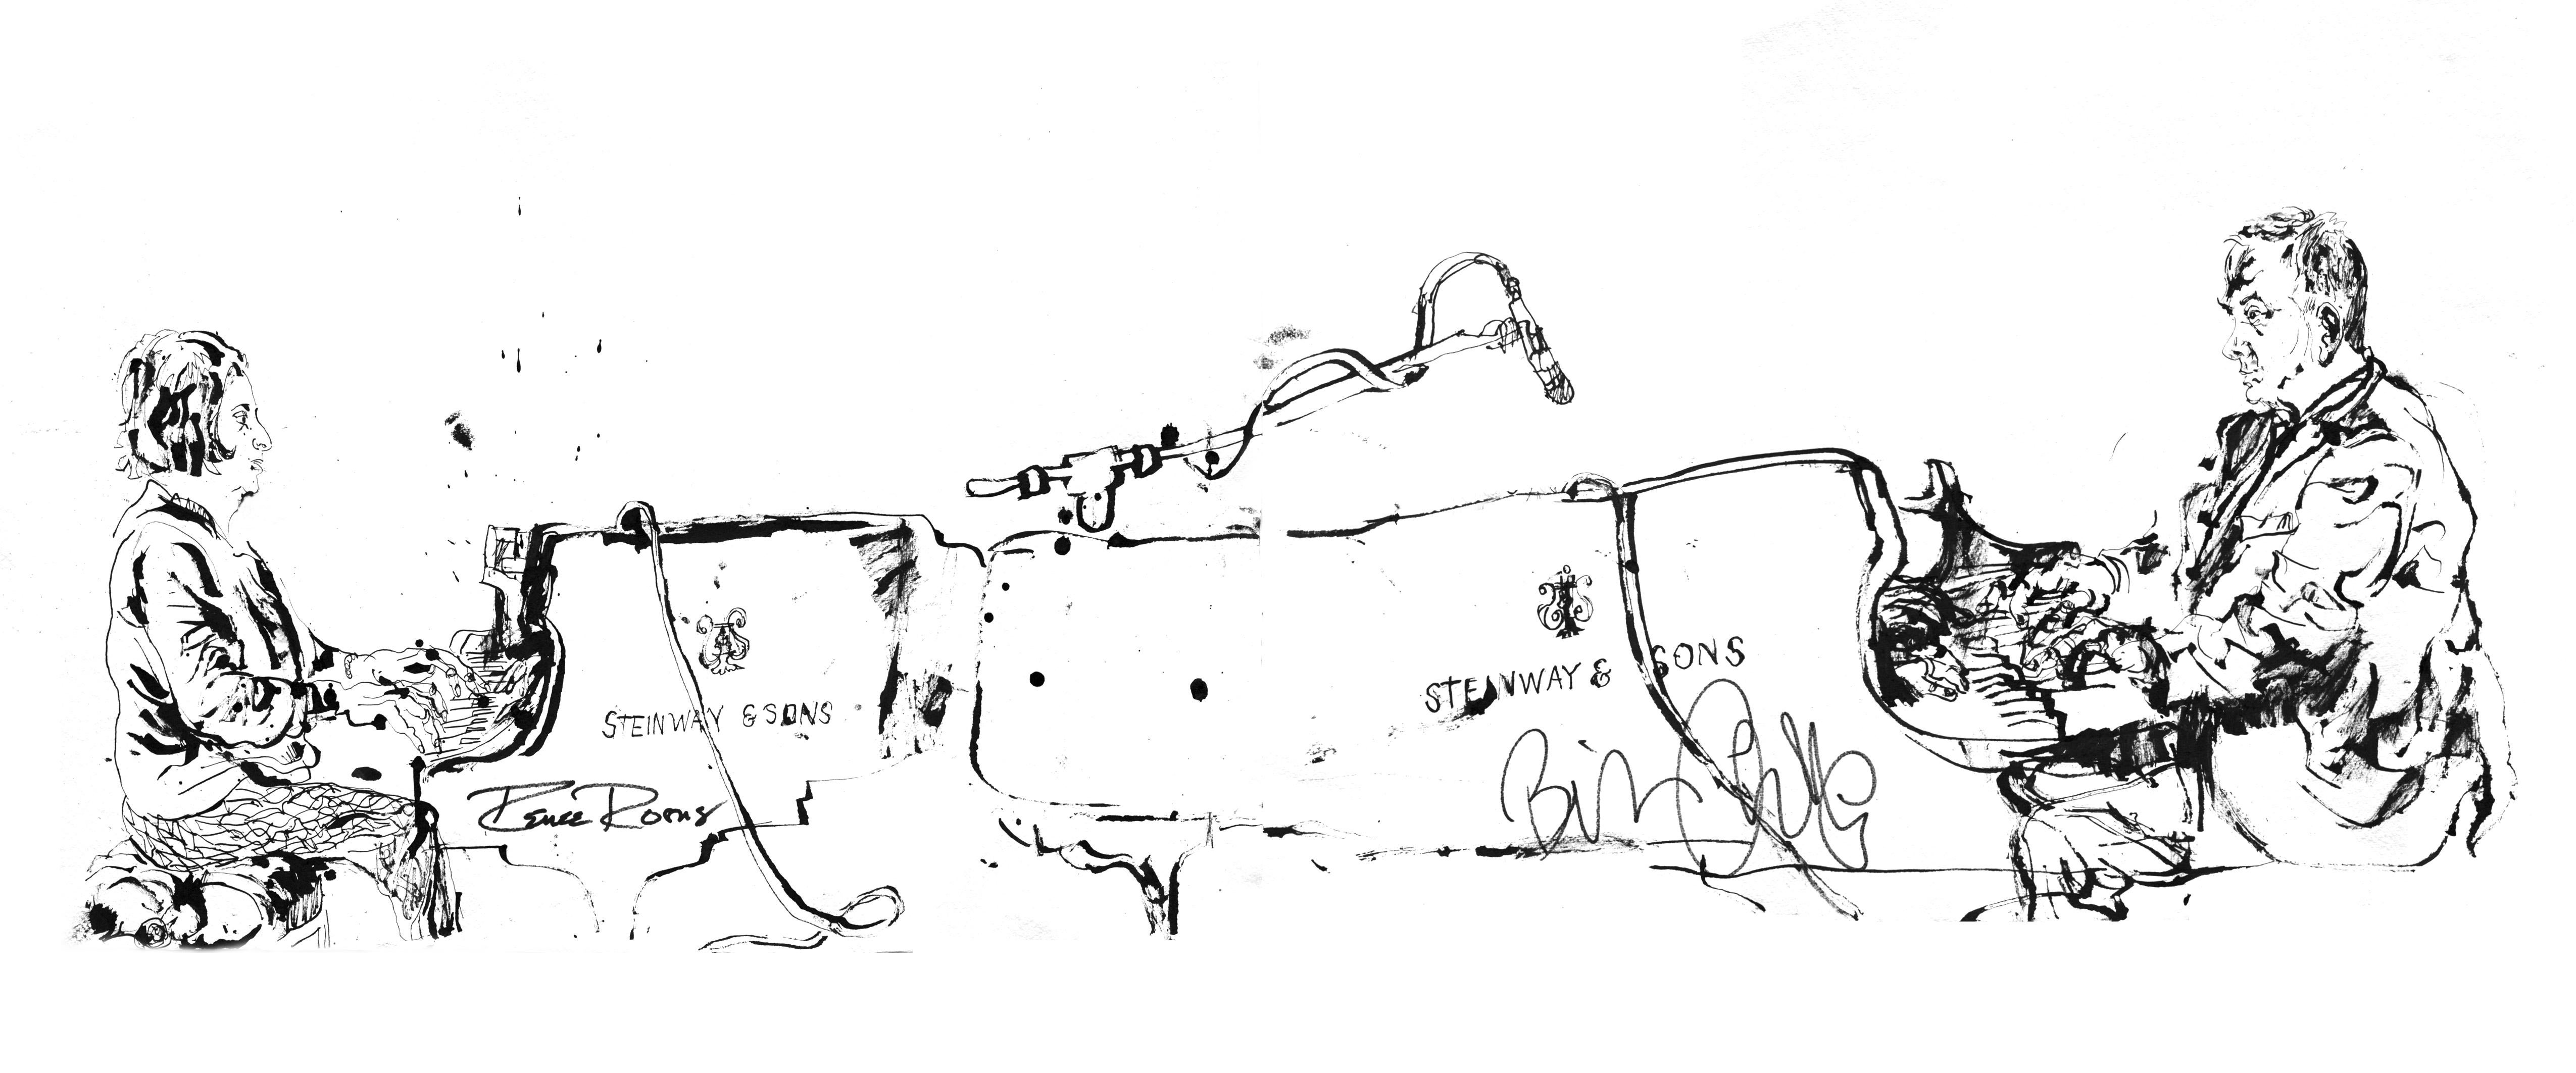 Renee Rosnes and Bill Charlap - Ink on Paper - Original Contemporary Sketch